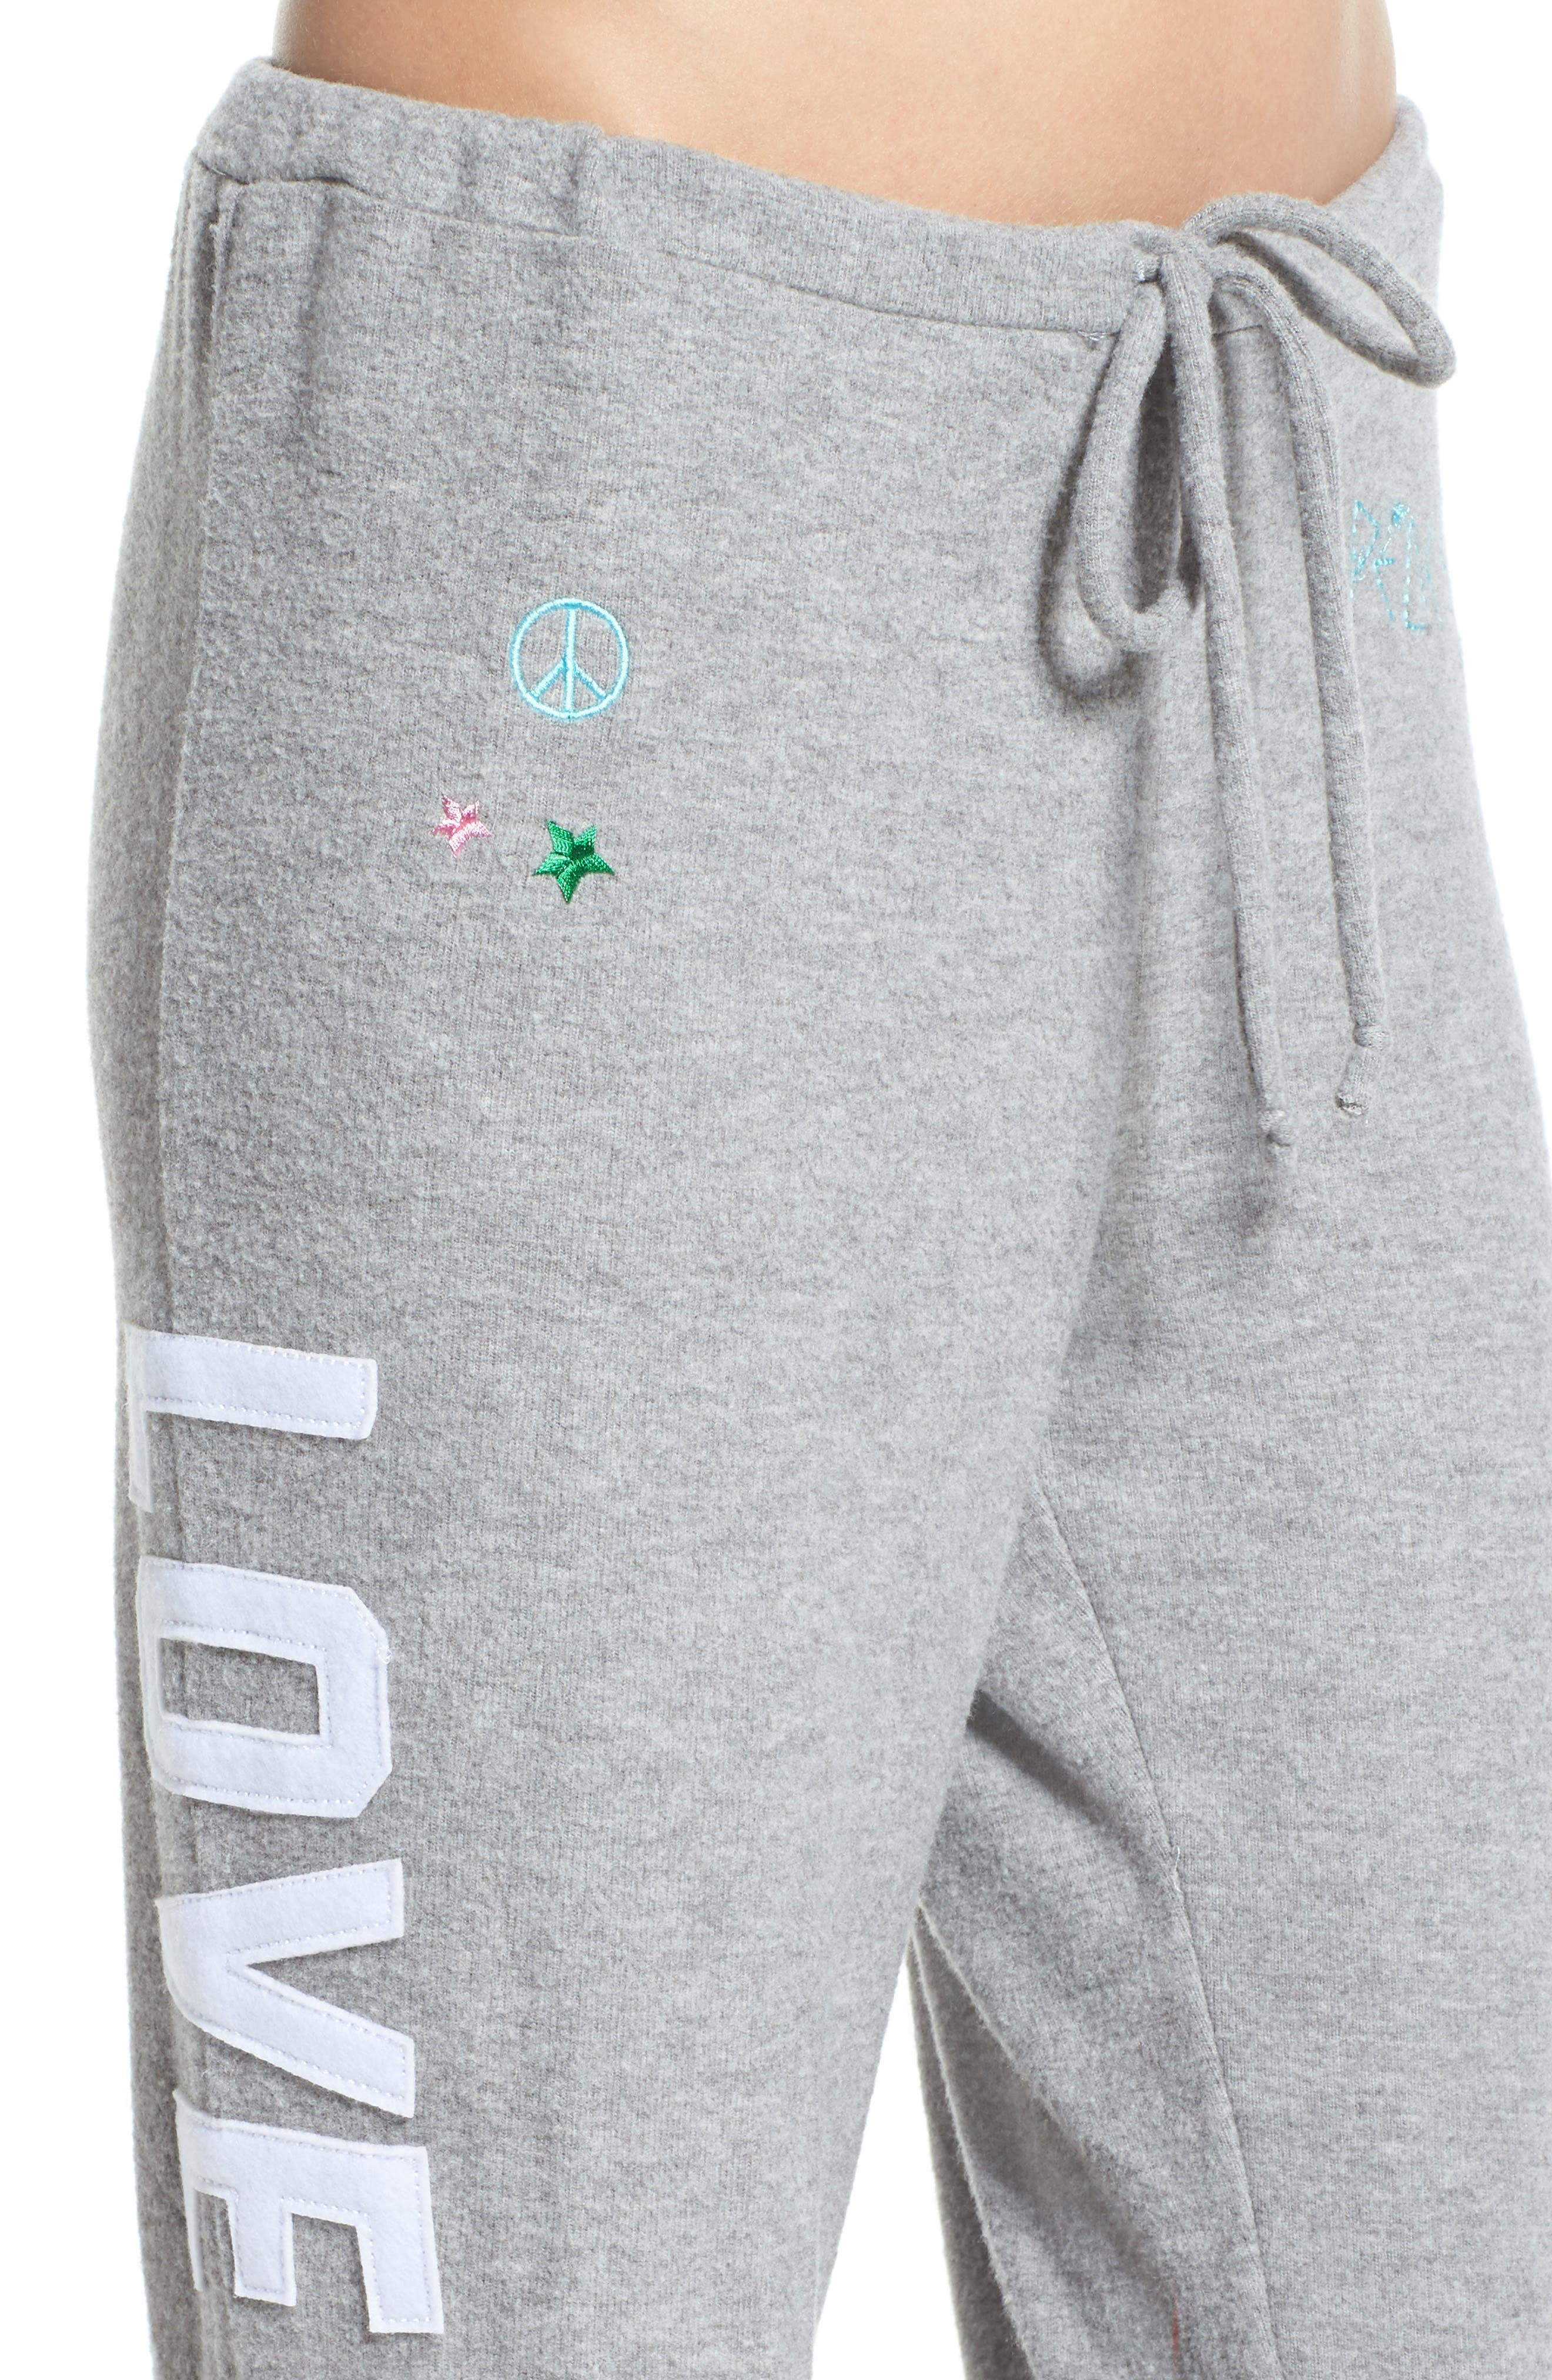 Patched Up Lounge Sweatpants,                             Alternate thumbnail 4, color,                             Heather Grey